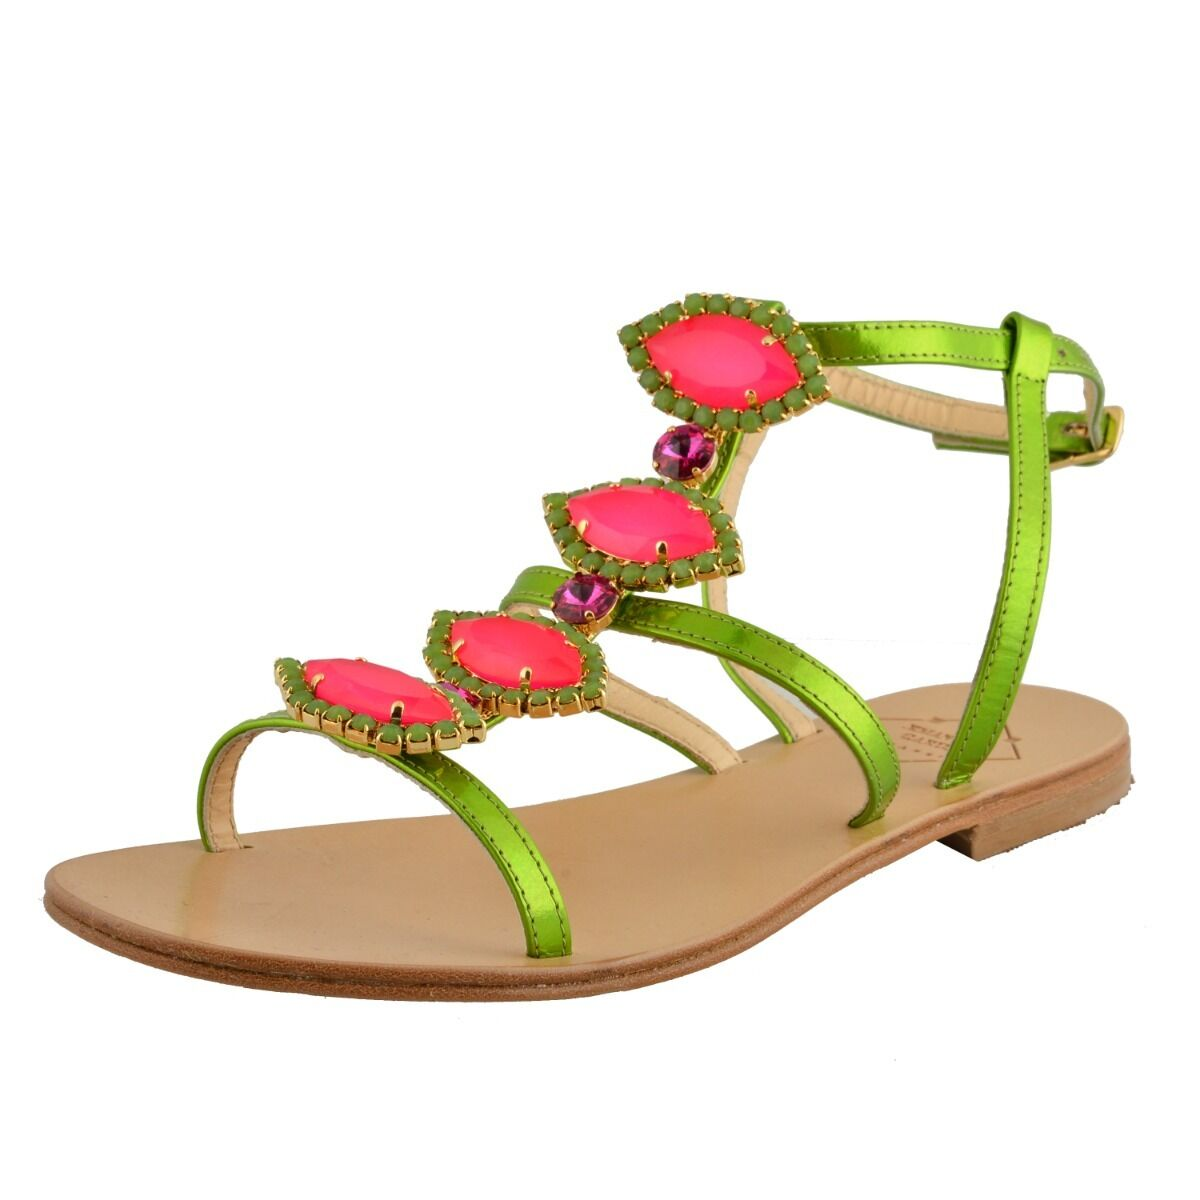 Emanuela Caruso Capri Women's Stones Decorated Flat Sandals shoes Size 5 6 7 9